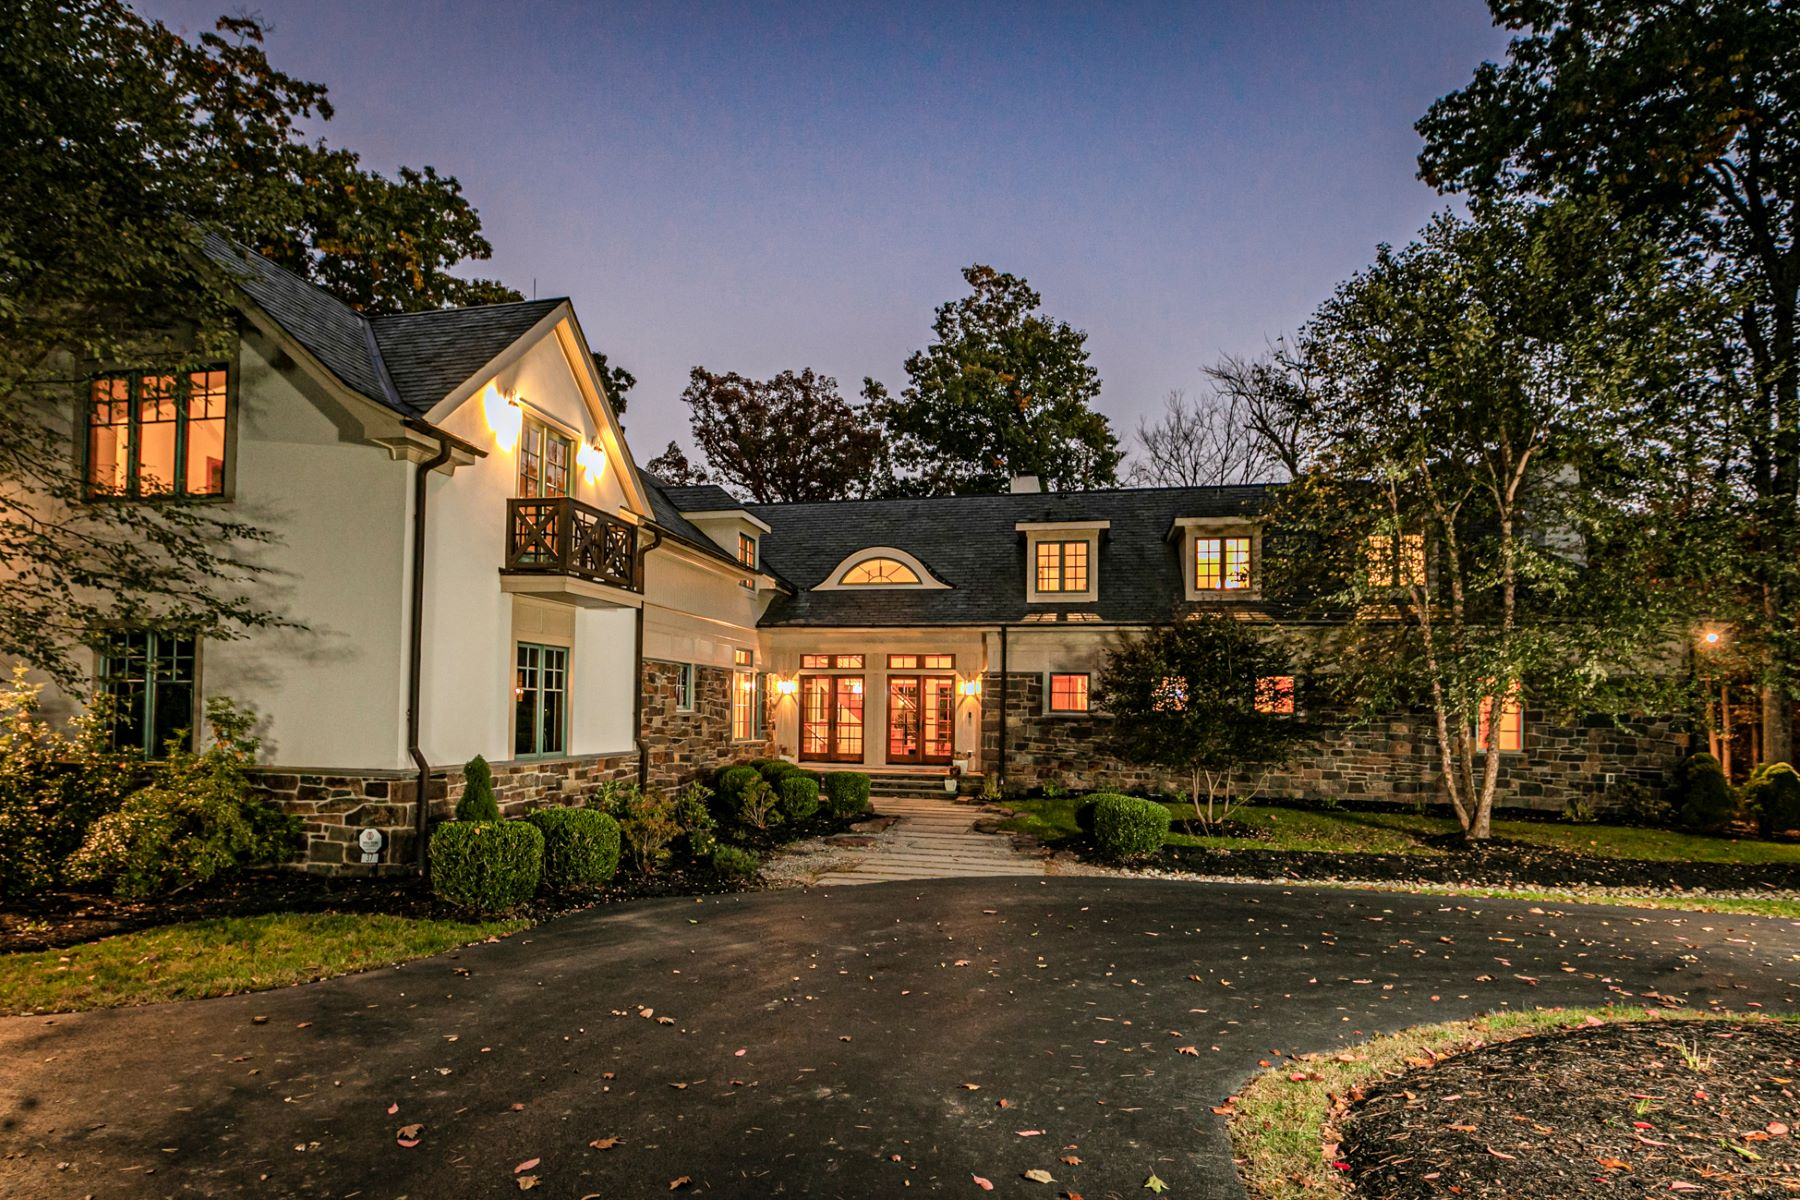 Luxury Craftsman Home Perched Above Stoney Brook 37 Stoney Brook Lane, Princeton, Nueva Jersey 08540 Estados Unidos